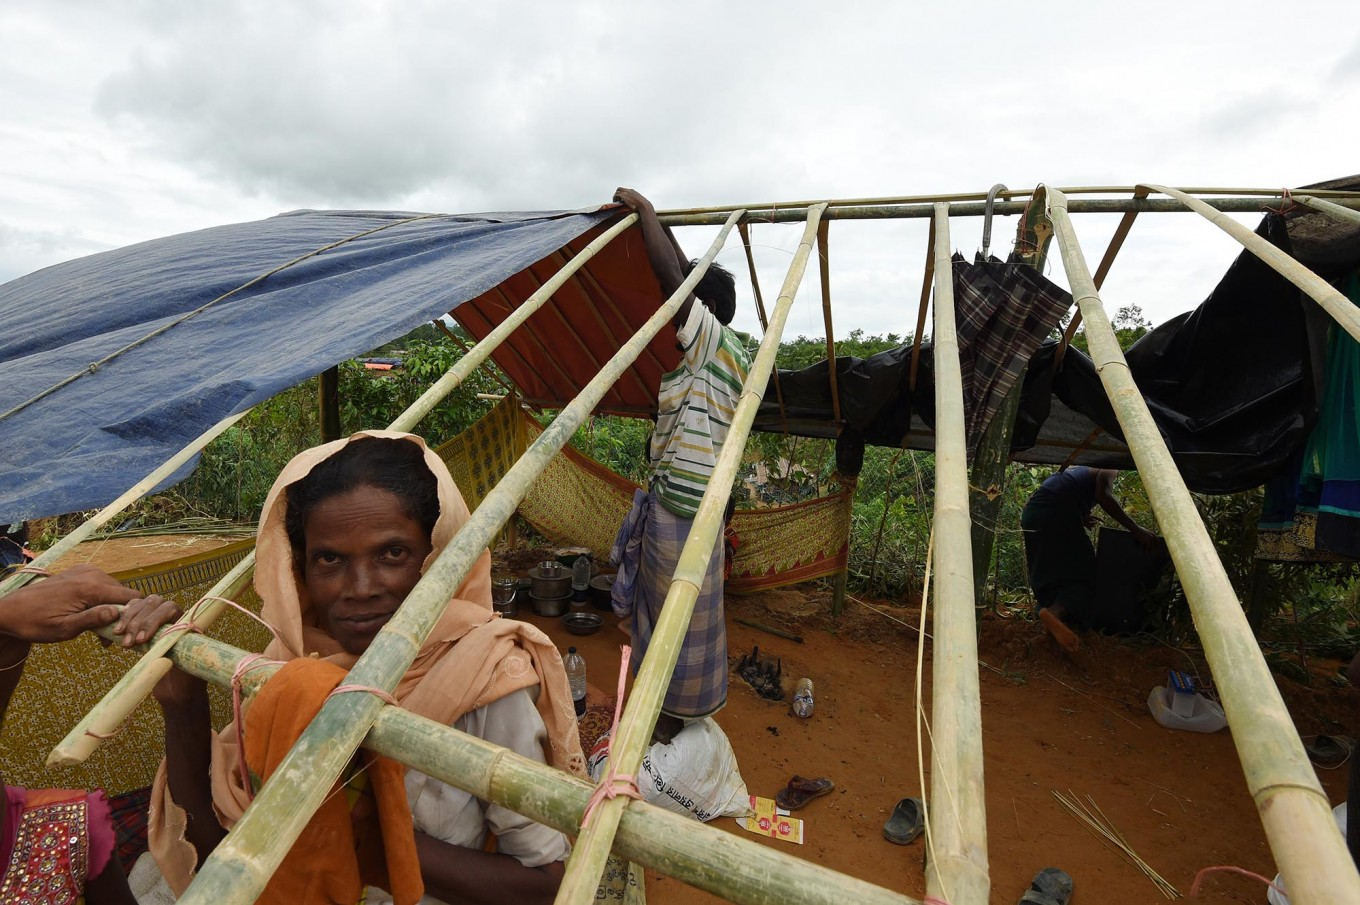 Rohingya refugees build a new makeshift shelters in the refugee camp of Thyangkhali near the Bangladeshi village of Gumdhum, on September 18, 2017. 